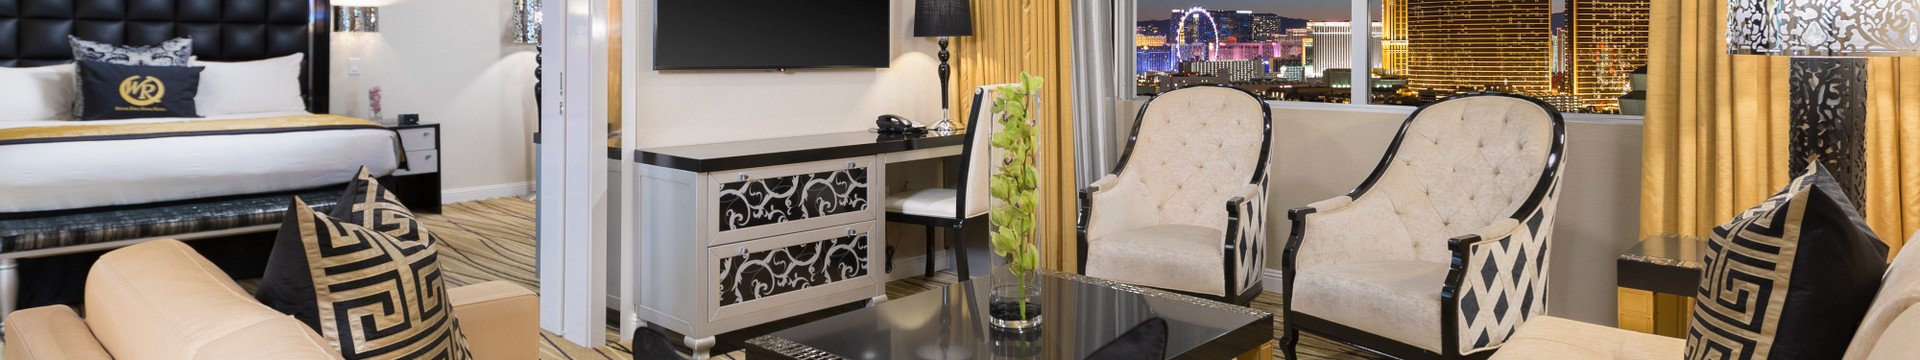 1 Bedroom Suites in Vegas at our Hotel and Casino | Luxury One Bedroom Suite